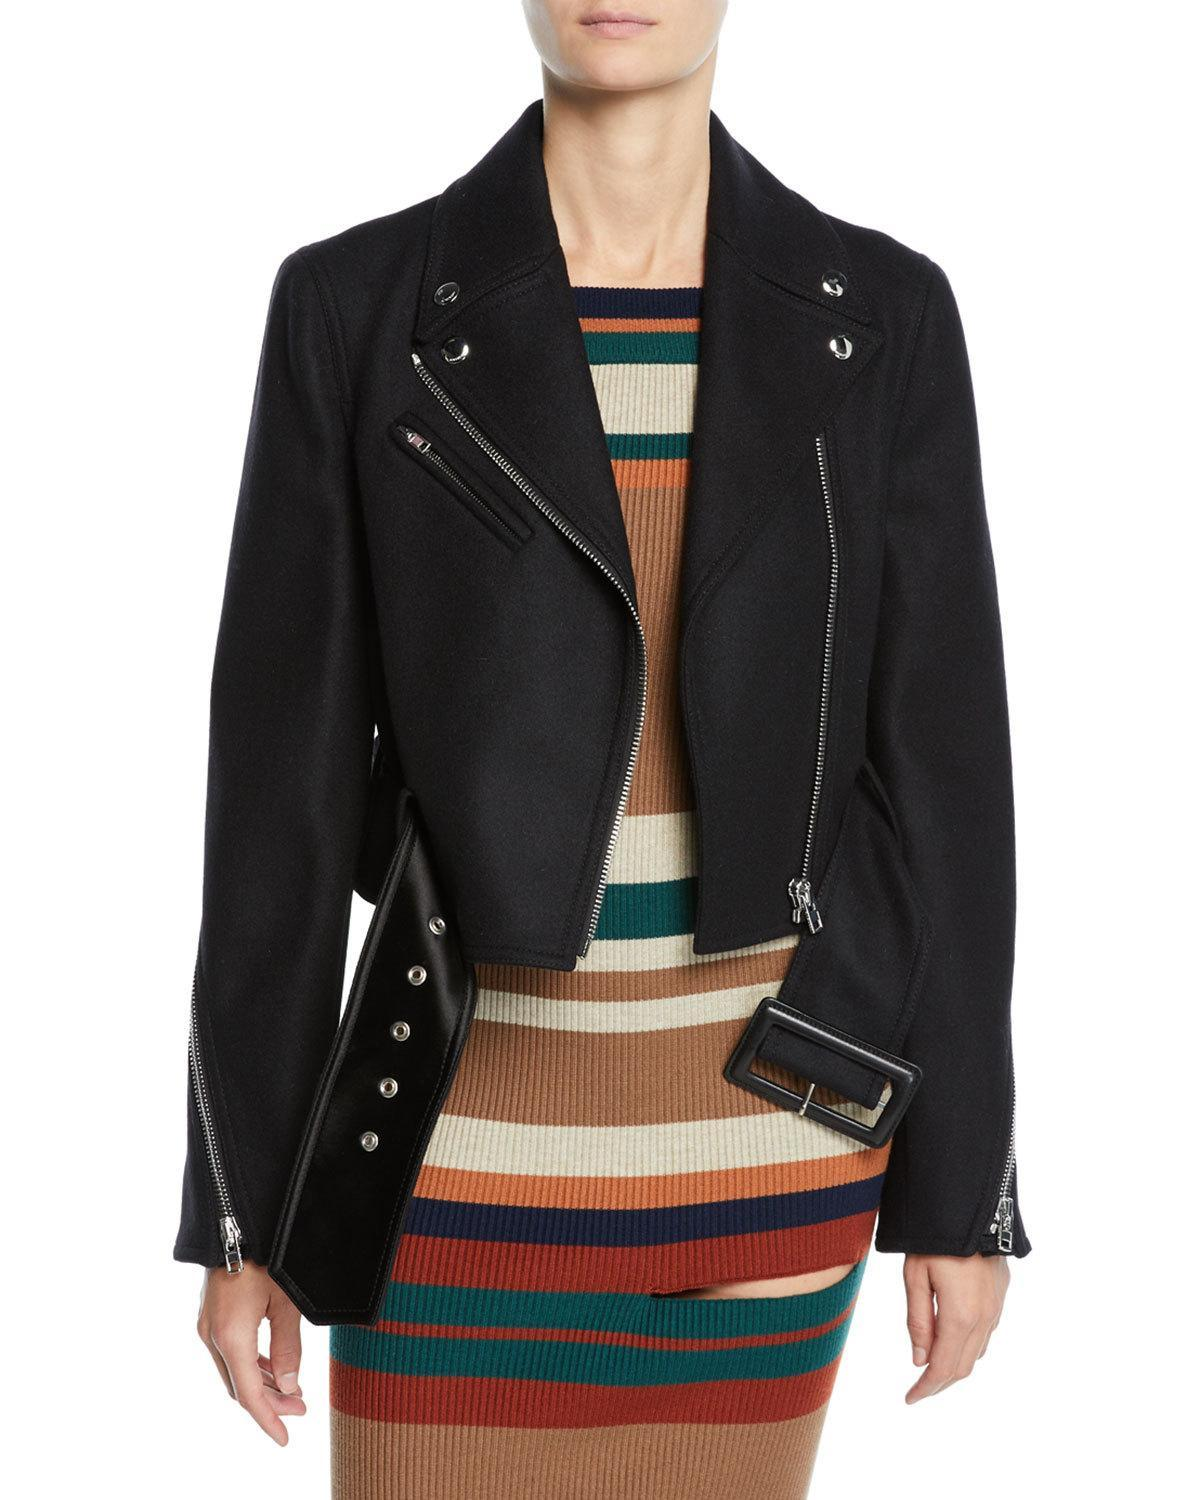 Givenchy Cropped Stretch Wool Biker Jacket In Black